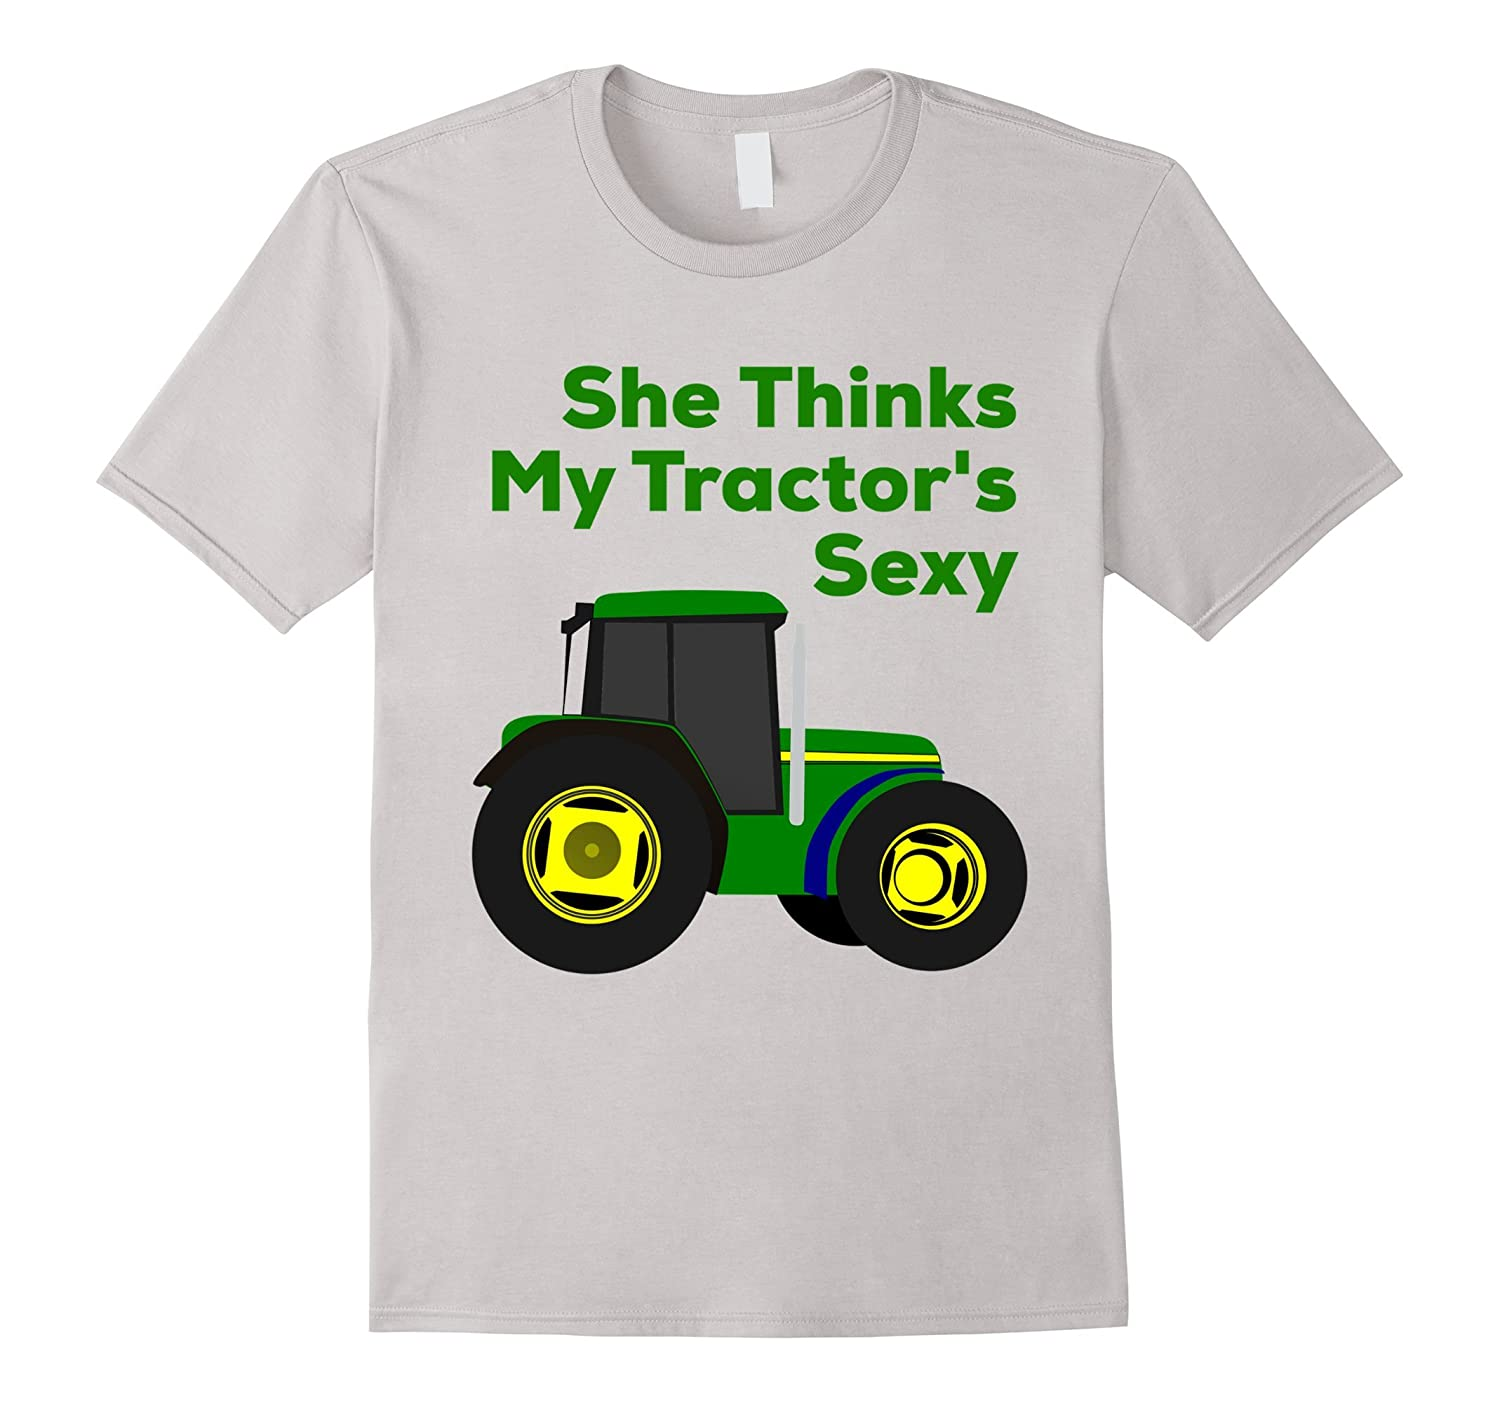 She thinks my tractors sexy tees